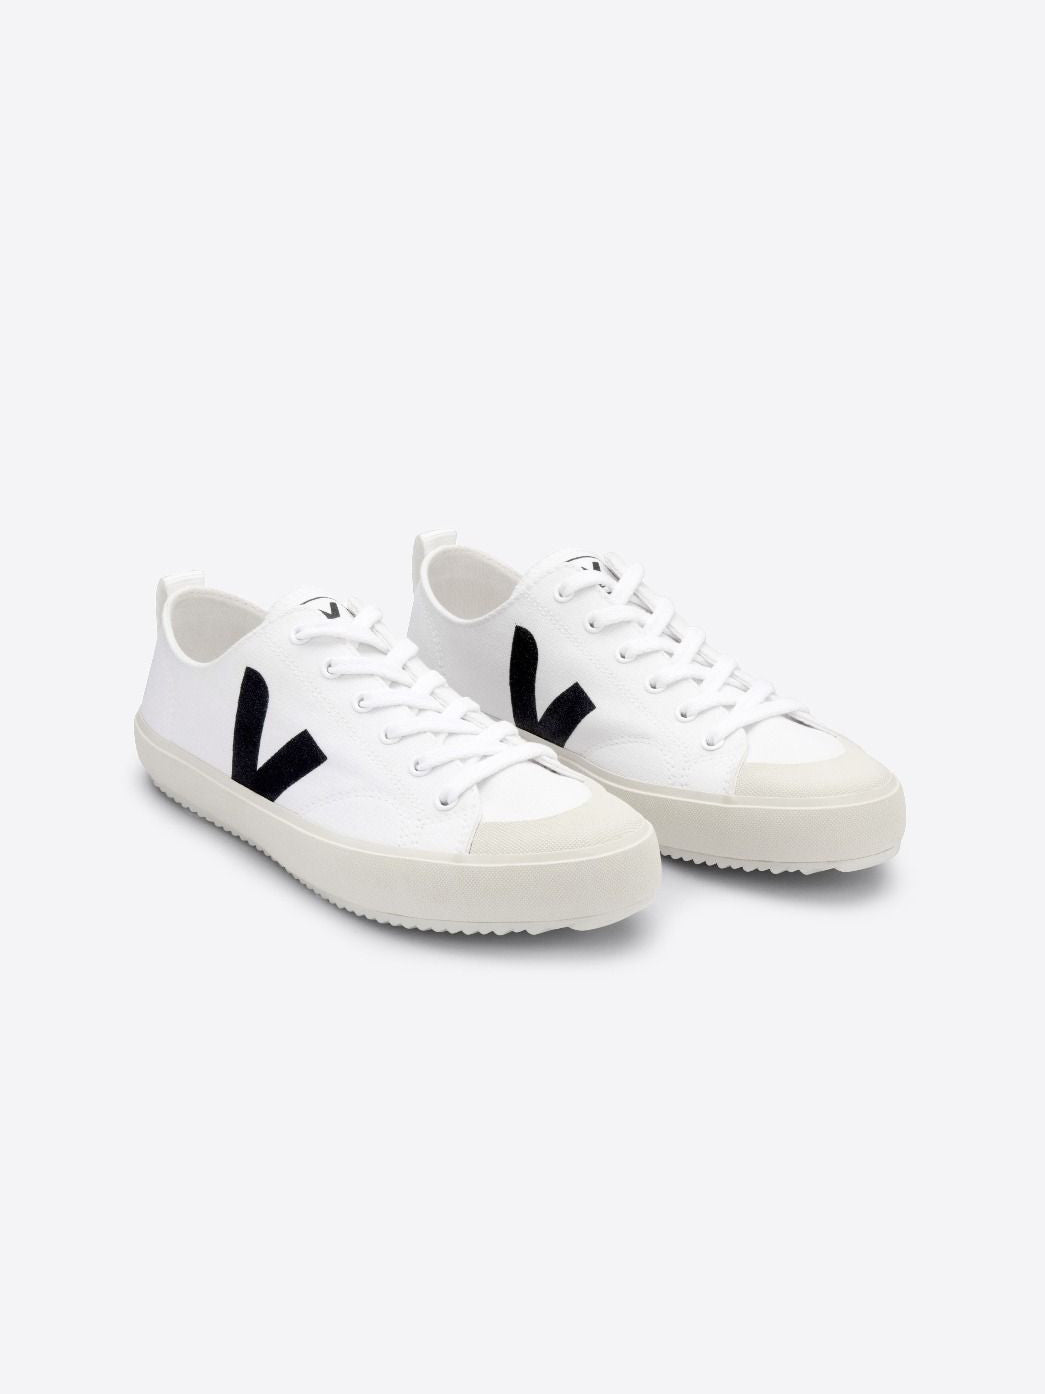 Nova canvas sneaker, white-black